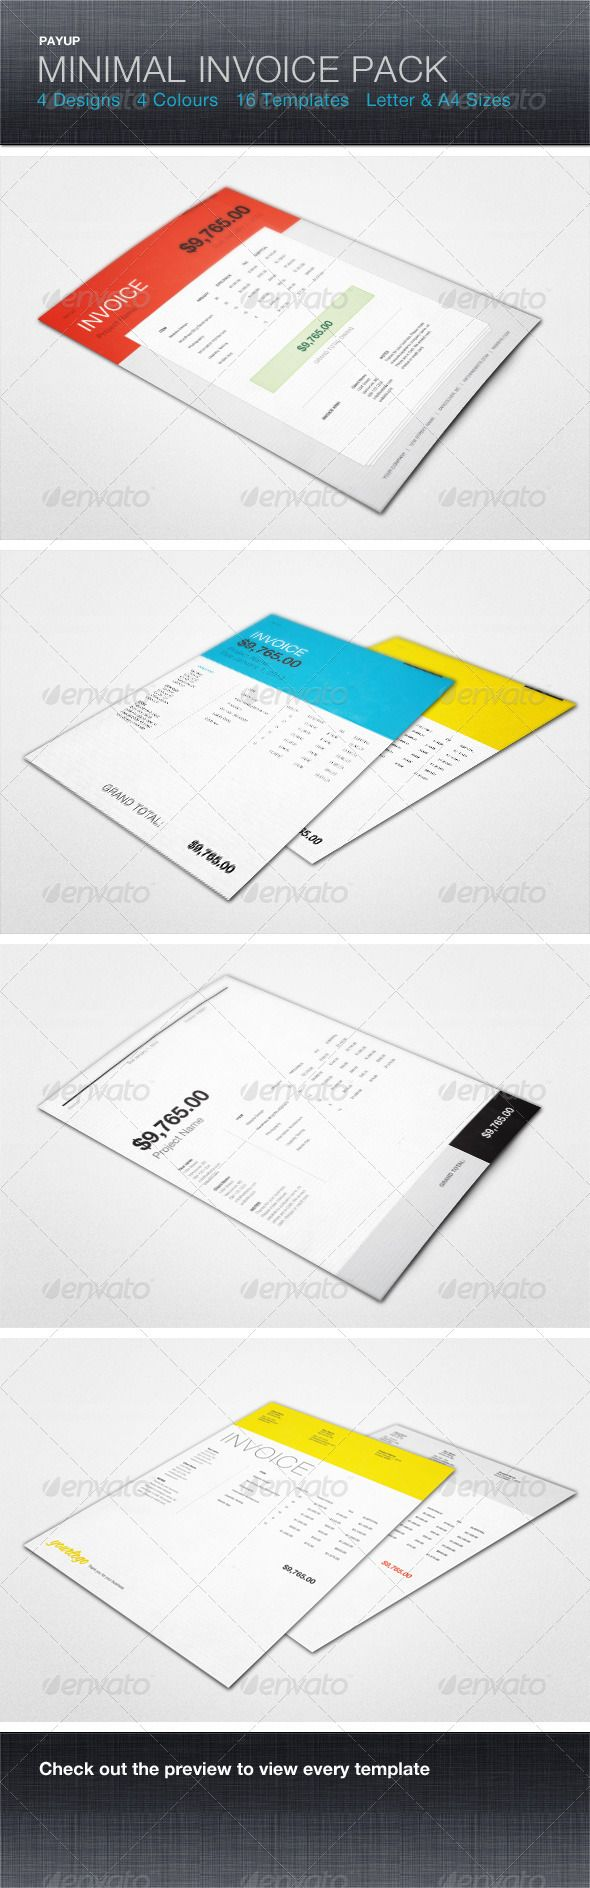 best ideas about lance invoice template payup minimal invoice template pack